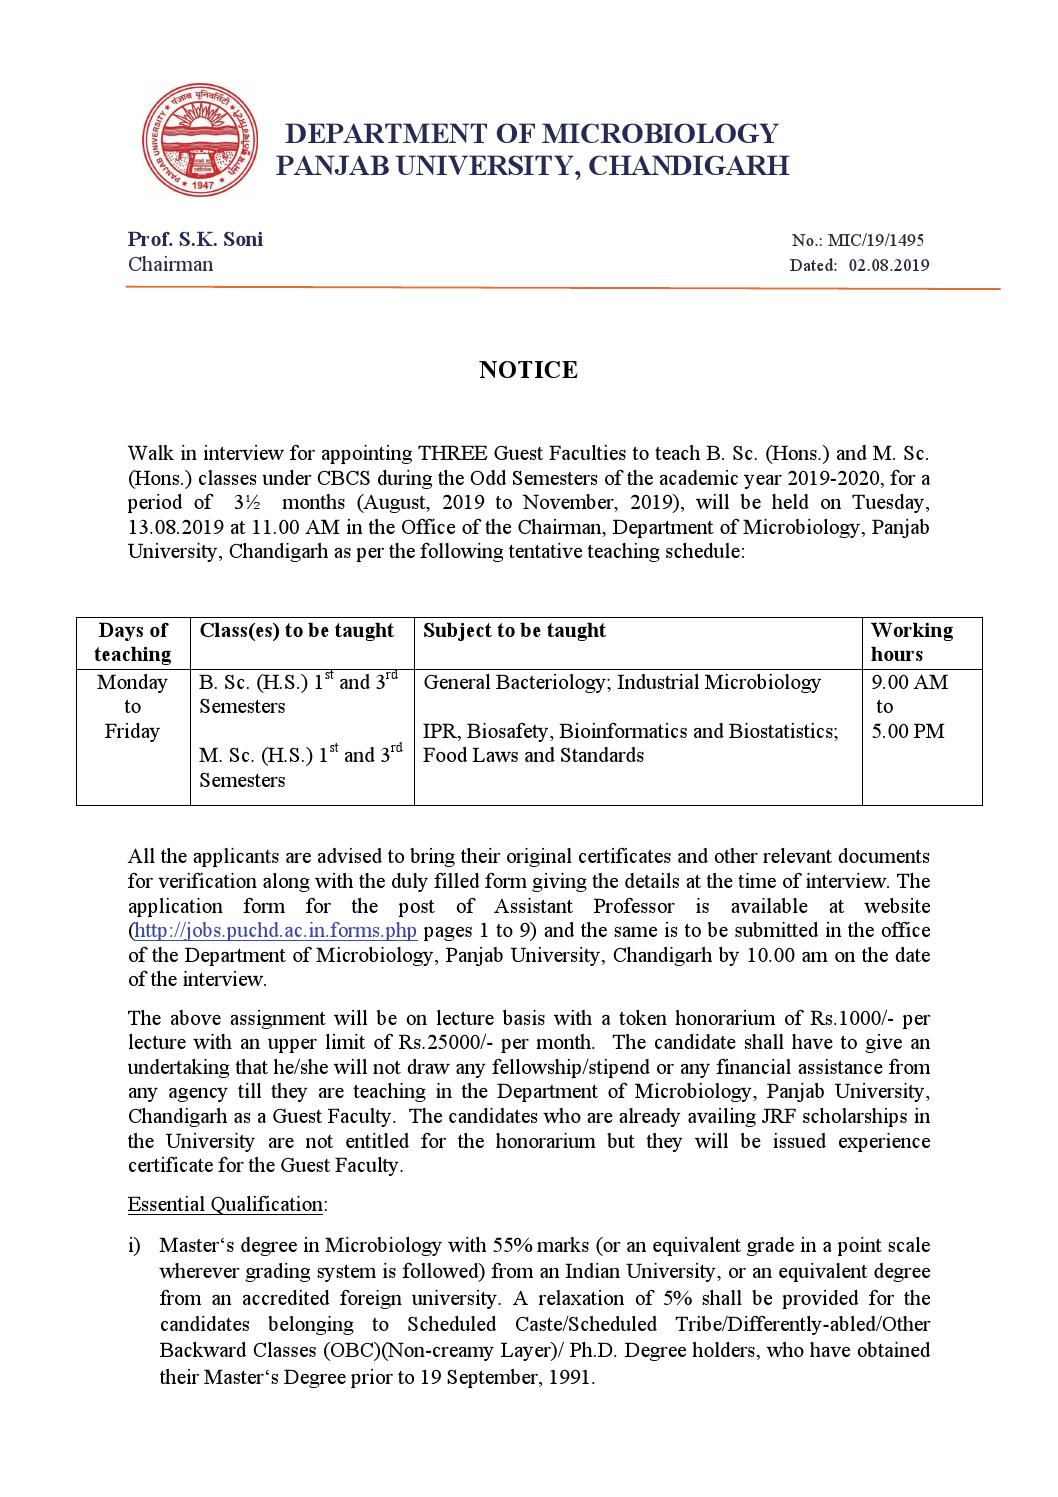 Panjab University Guest Faculty Recruitment - MSc Candidates